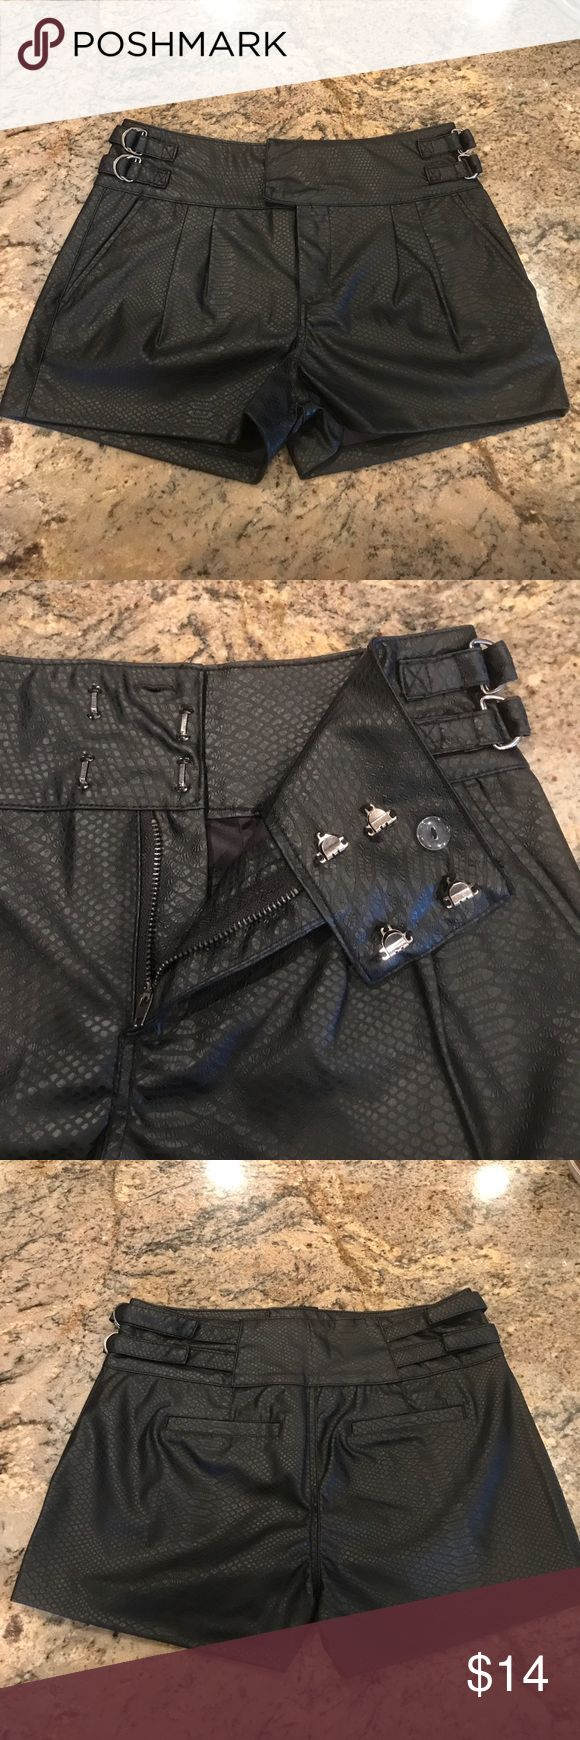 """Black Faux Leather short booty shorts new These are off price black faux booty shorts. The tags have been removed per our agreement with the manufacturer. We can not disclose the manufacturer per our agreement.   """"Definition of 'Off Price Retailers' Definition: Off-price retailers are retailers who provide high quality goods at cheap prices. off-the-season items etc. Description: These retailers offer inconsistent assortment of brand name and fashion-oriented soft goods at low prices…"""